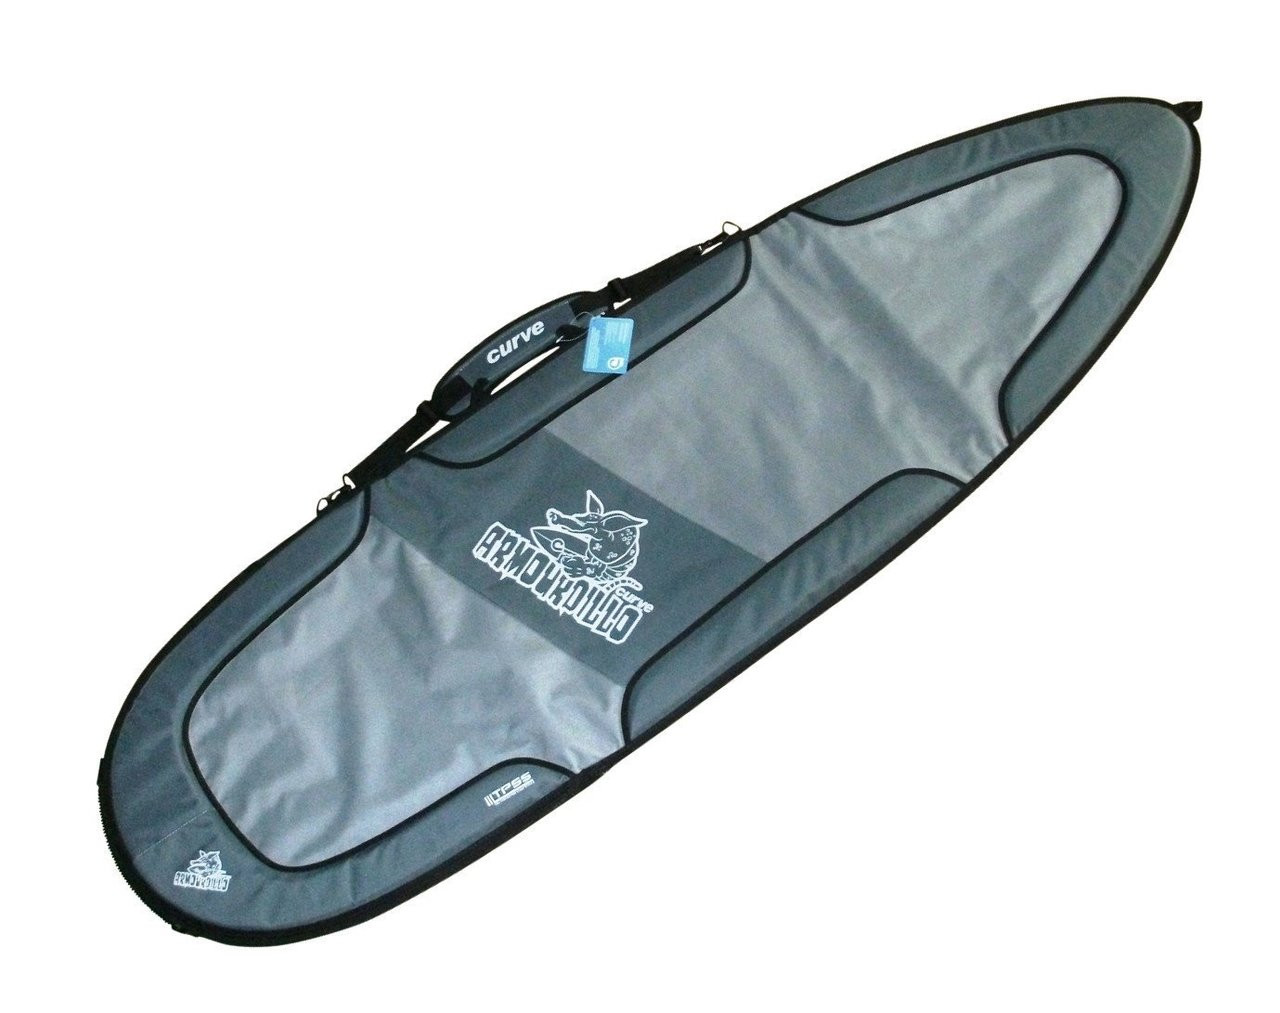 Shortboard Travel Bag | Surf Cover 6'0 to 7'6""